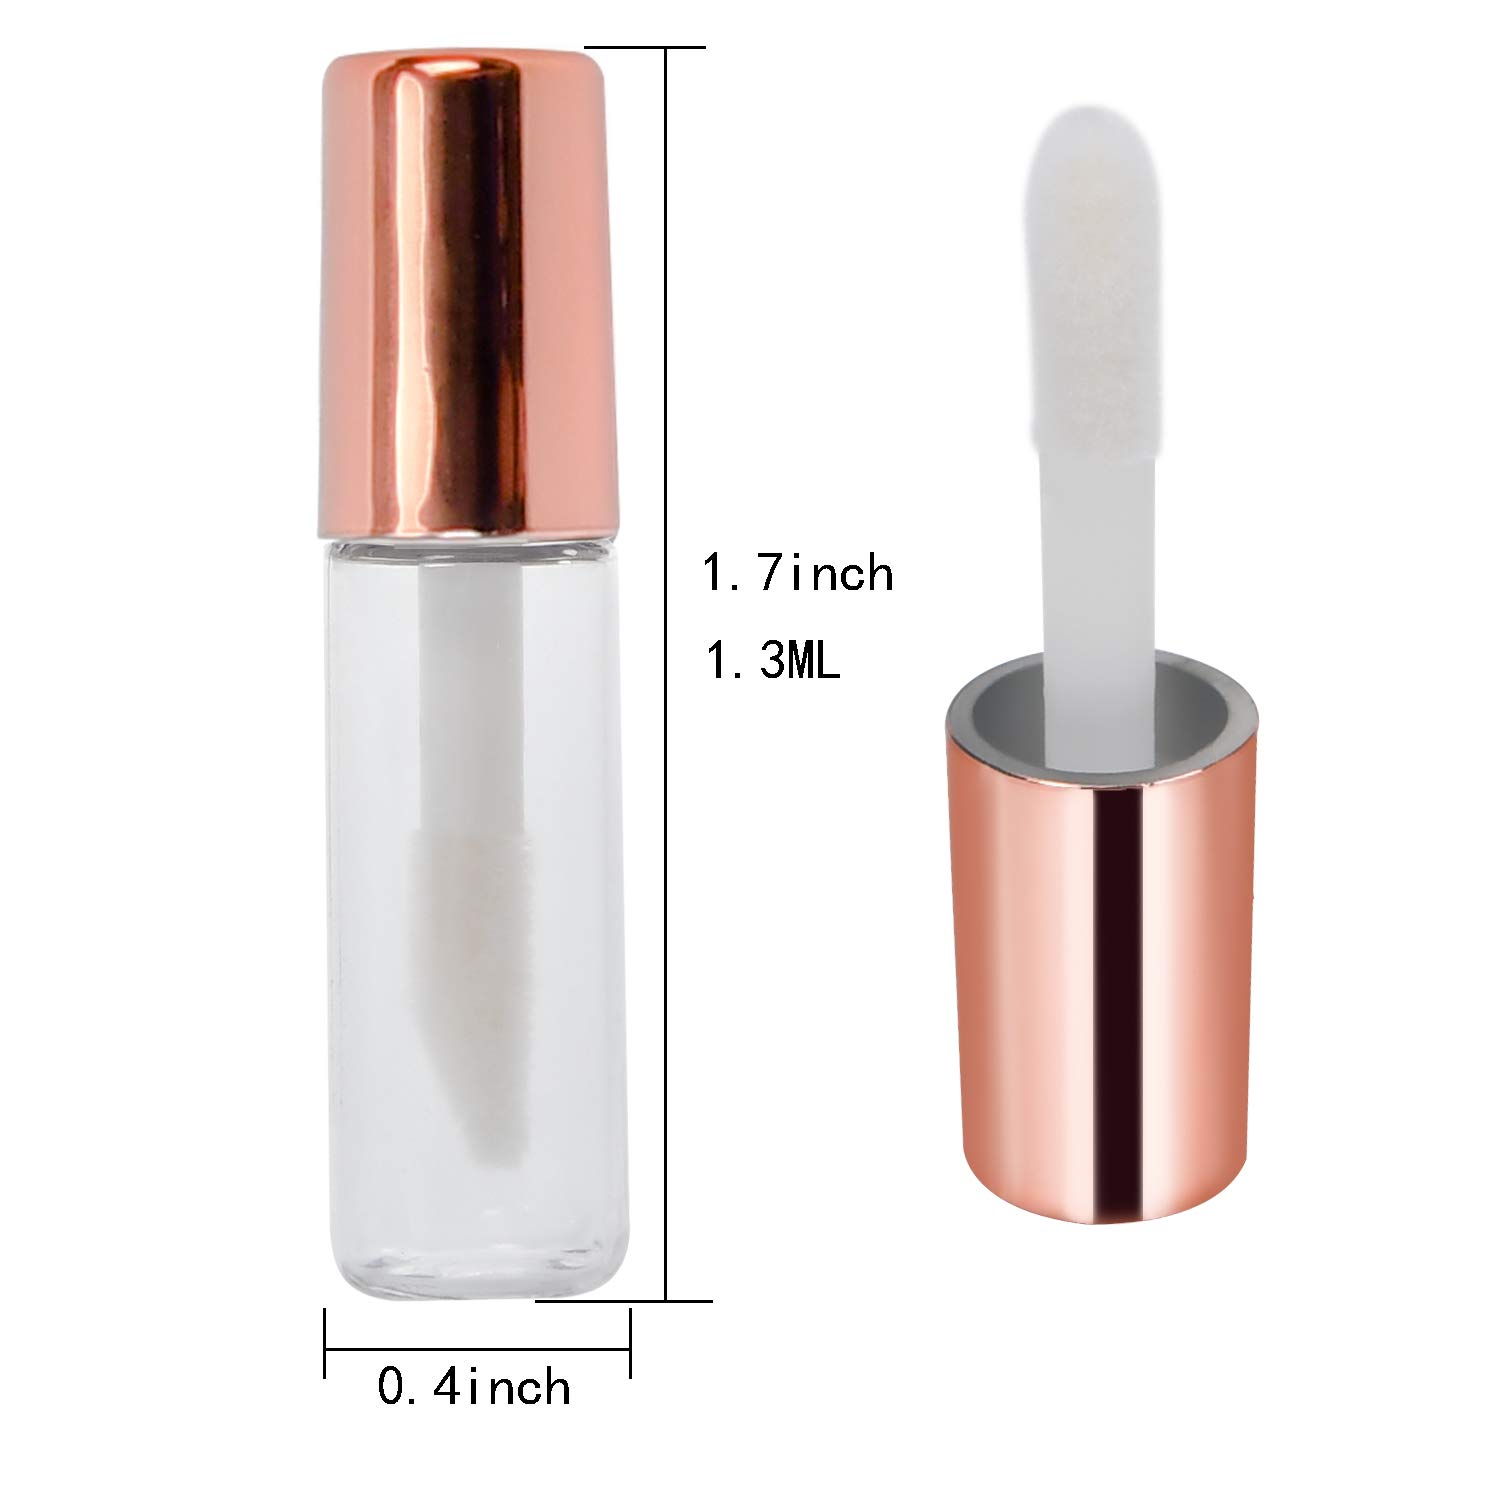 25Pcs 1.3ml Empty Lip Gloss Tubes Containers, DIY Makeup Liquid Lipstick Bottles Kit Plastic Clear Mini Lip Balm with Funnels and Transfer Pipettes Set Gold